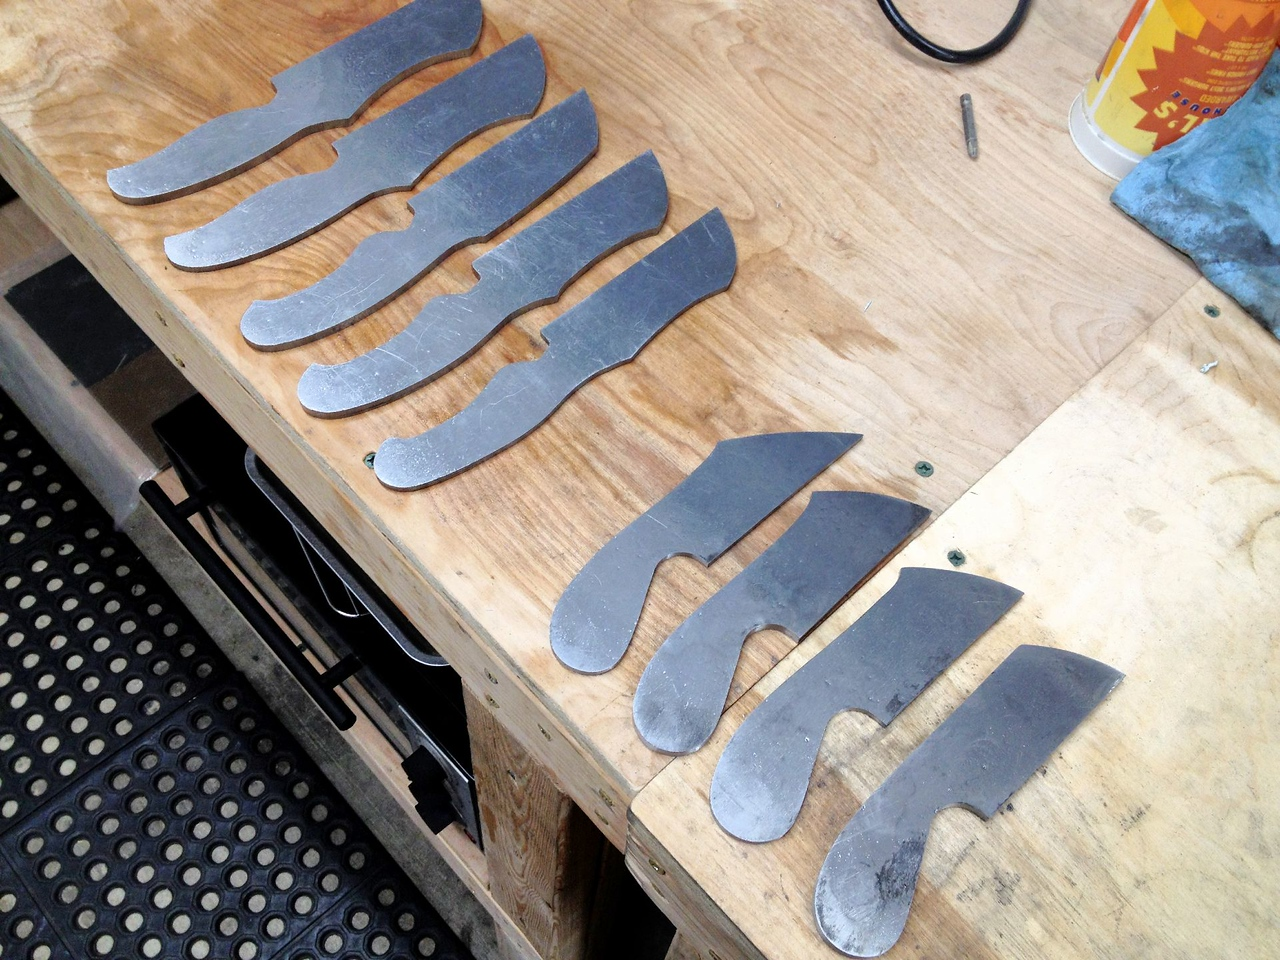 I got the 4 smaller knives profiled to their final shape before my body told me I was done for the day.